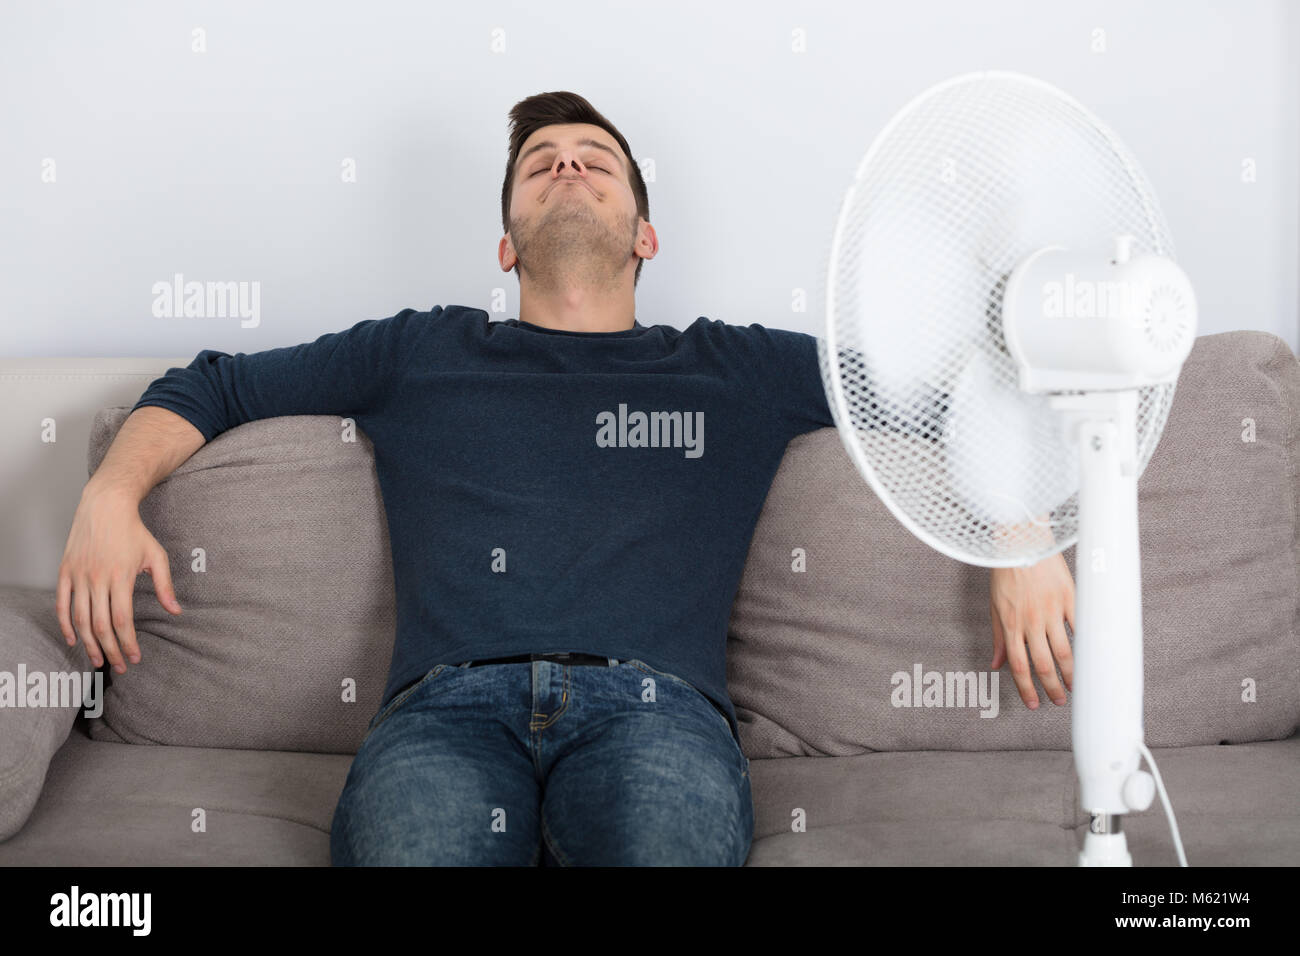 Young Man Sitting On Couch Cooling Off With Fan During Hot Weather At Home - Stock Image